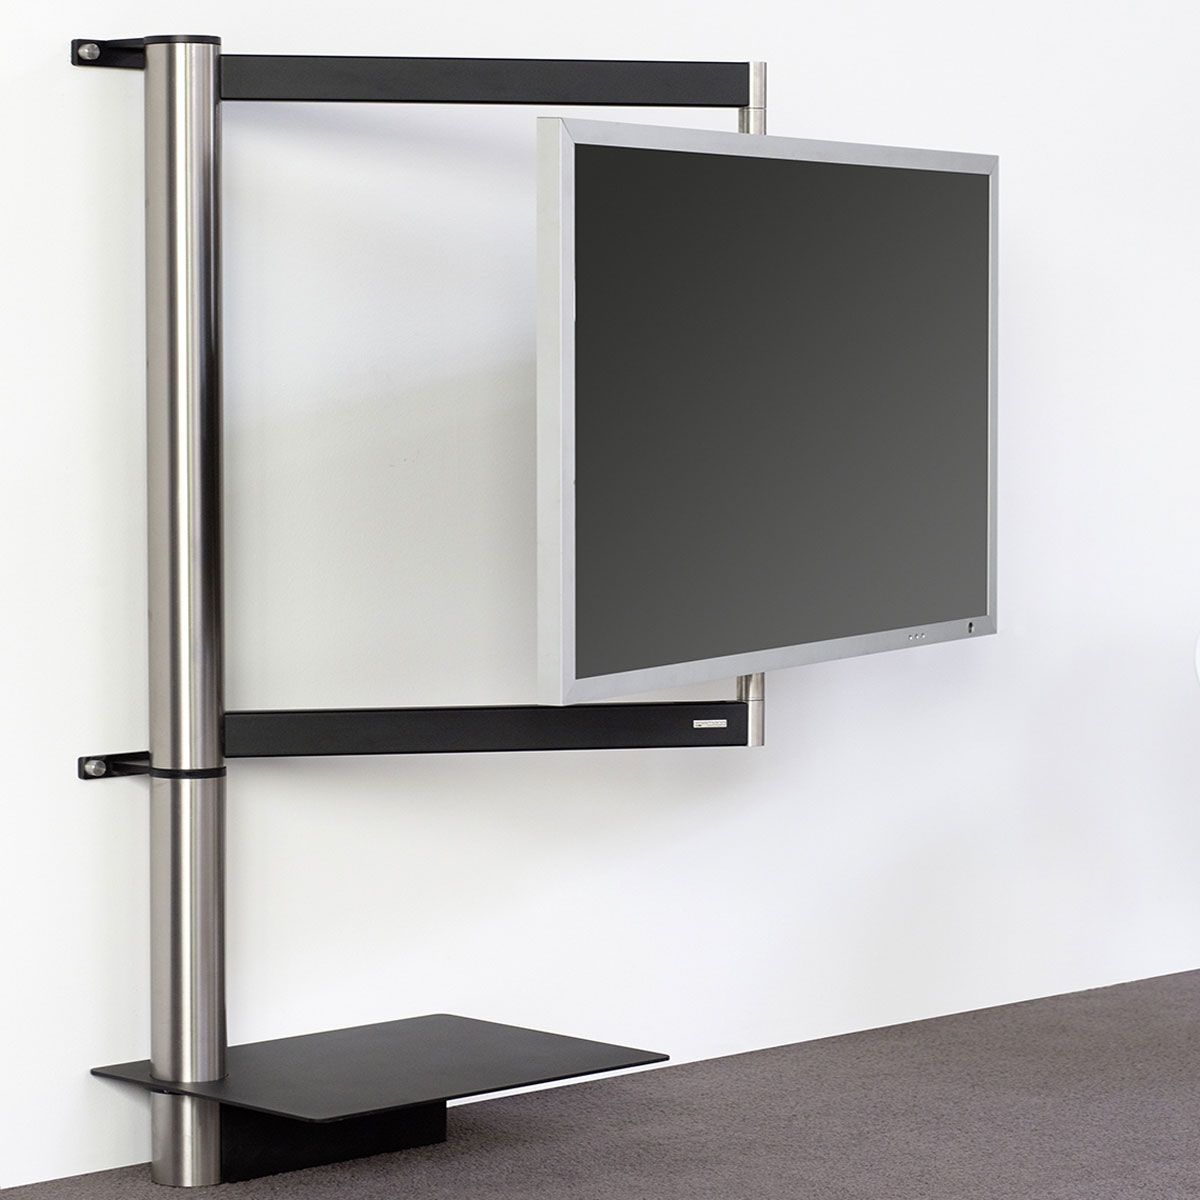 tv wandhalter fernsehhalter schwenkbar rack schwenkarm tv pinterest tvs sunroom and. Black Bedroom Furniture Sets. Home Design Ideas